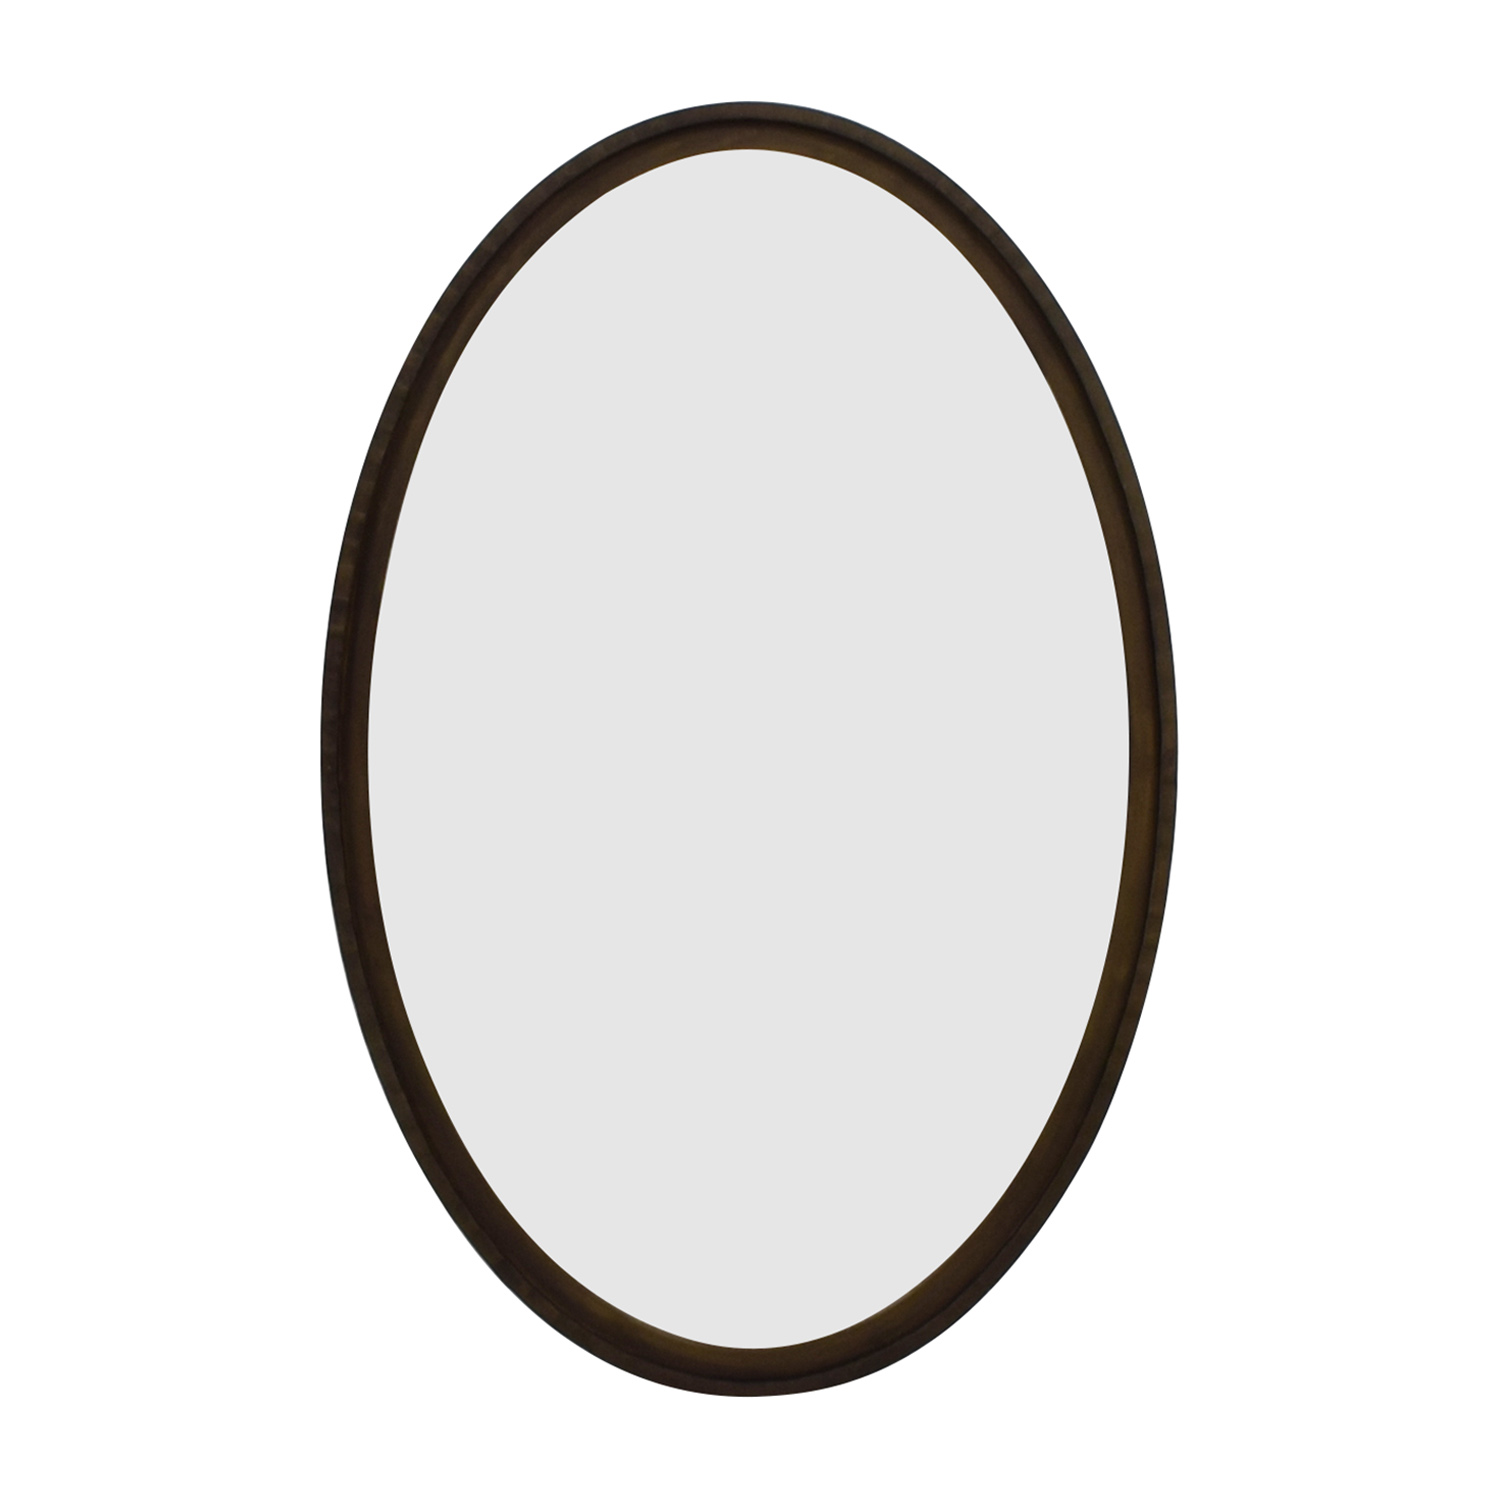 buy Crate & Barrel Crate & Barrel Oval Wood Framed Wall Mirror online